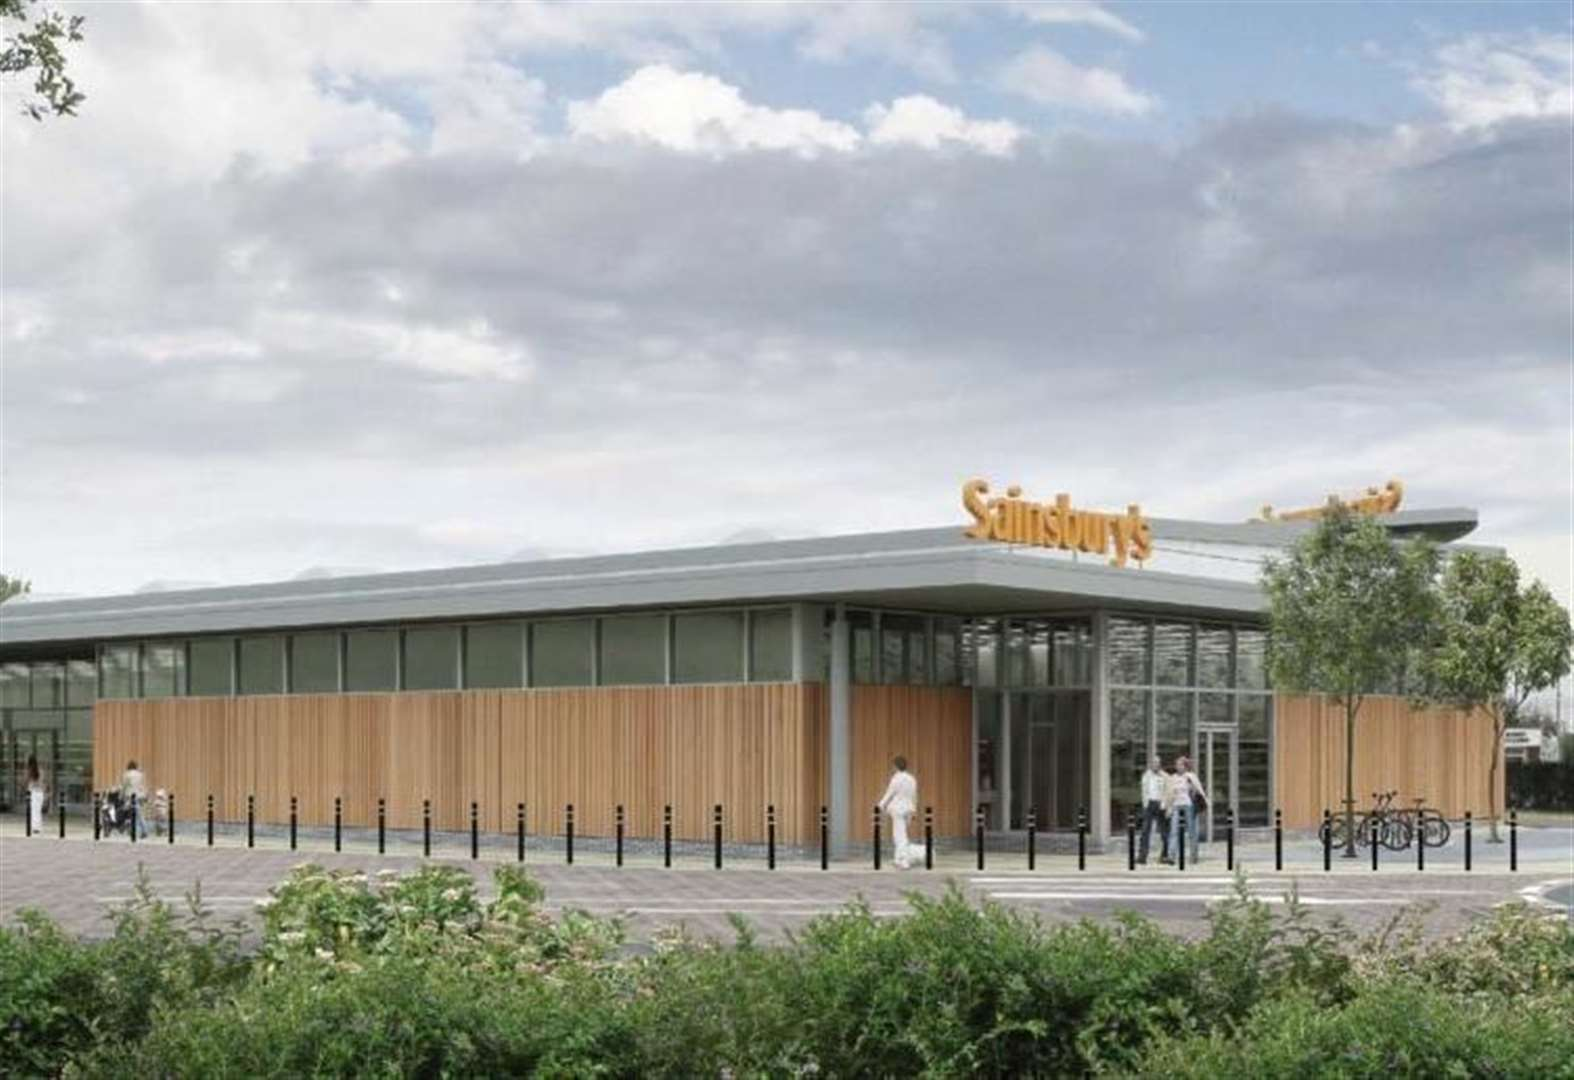 Full speed ahead for new Sainsbury's